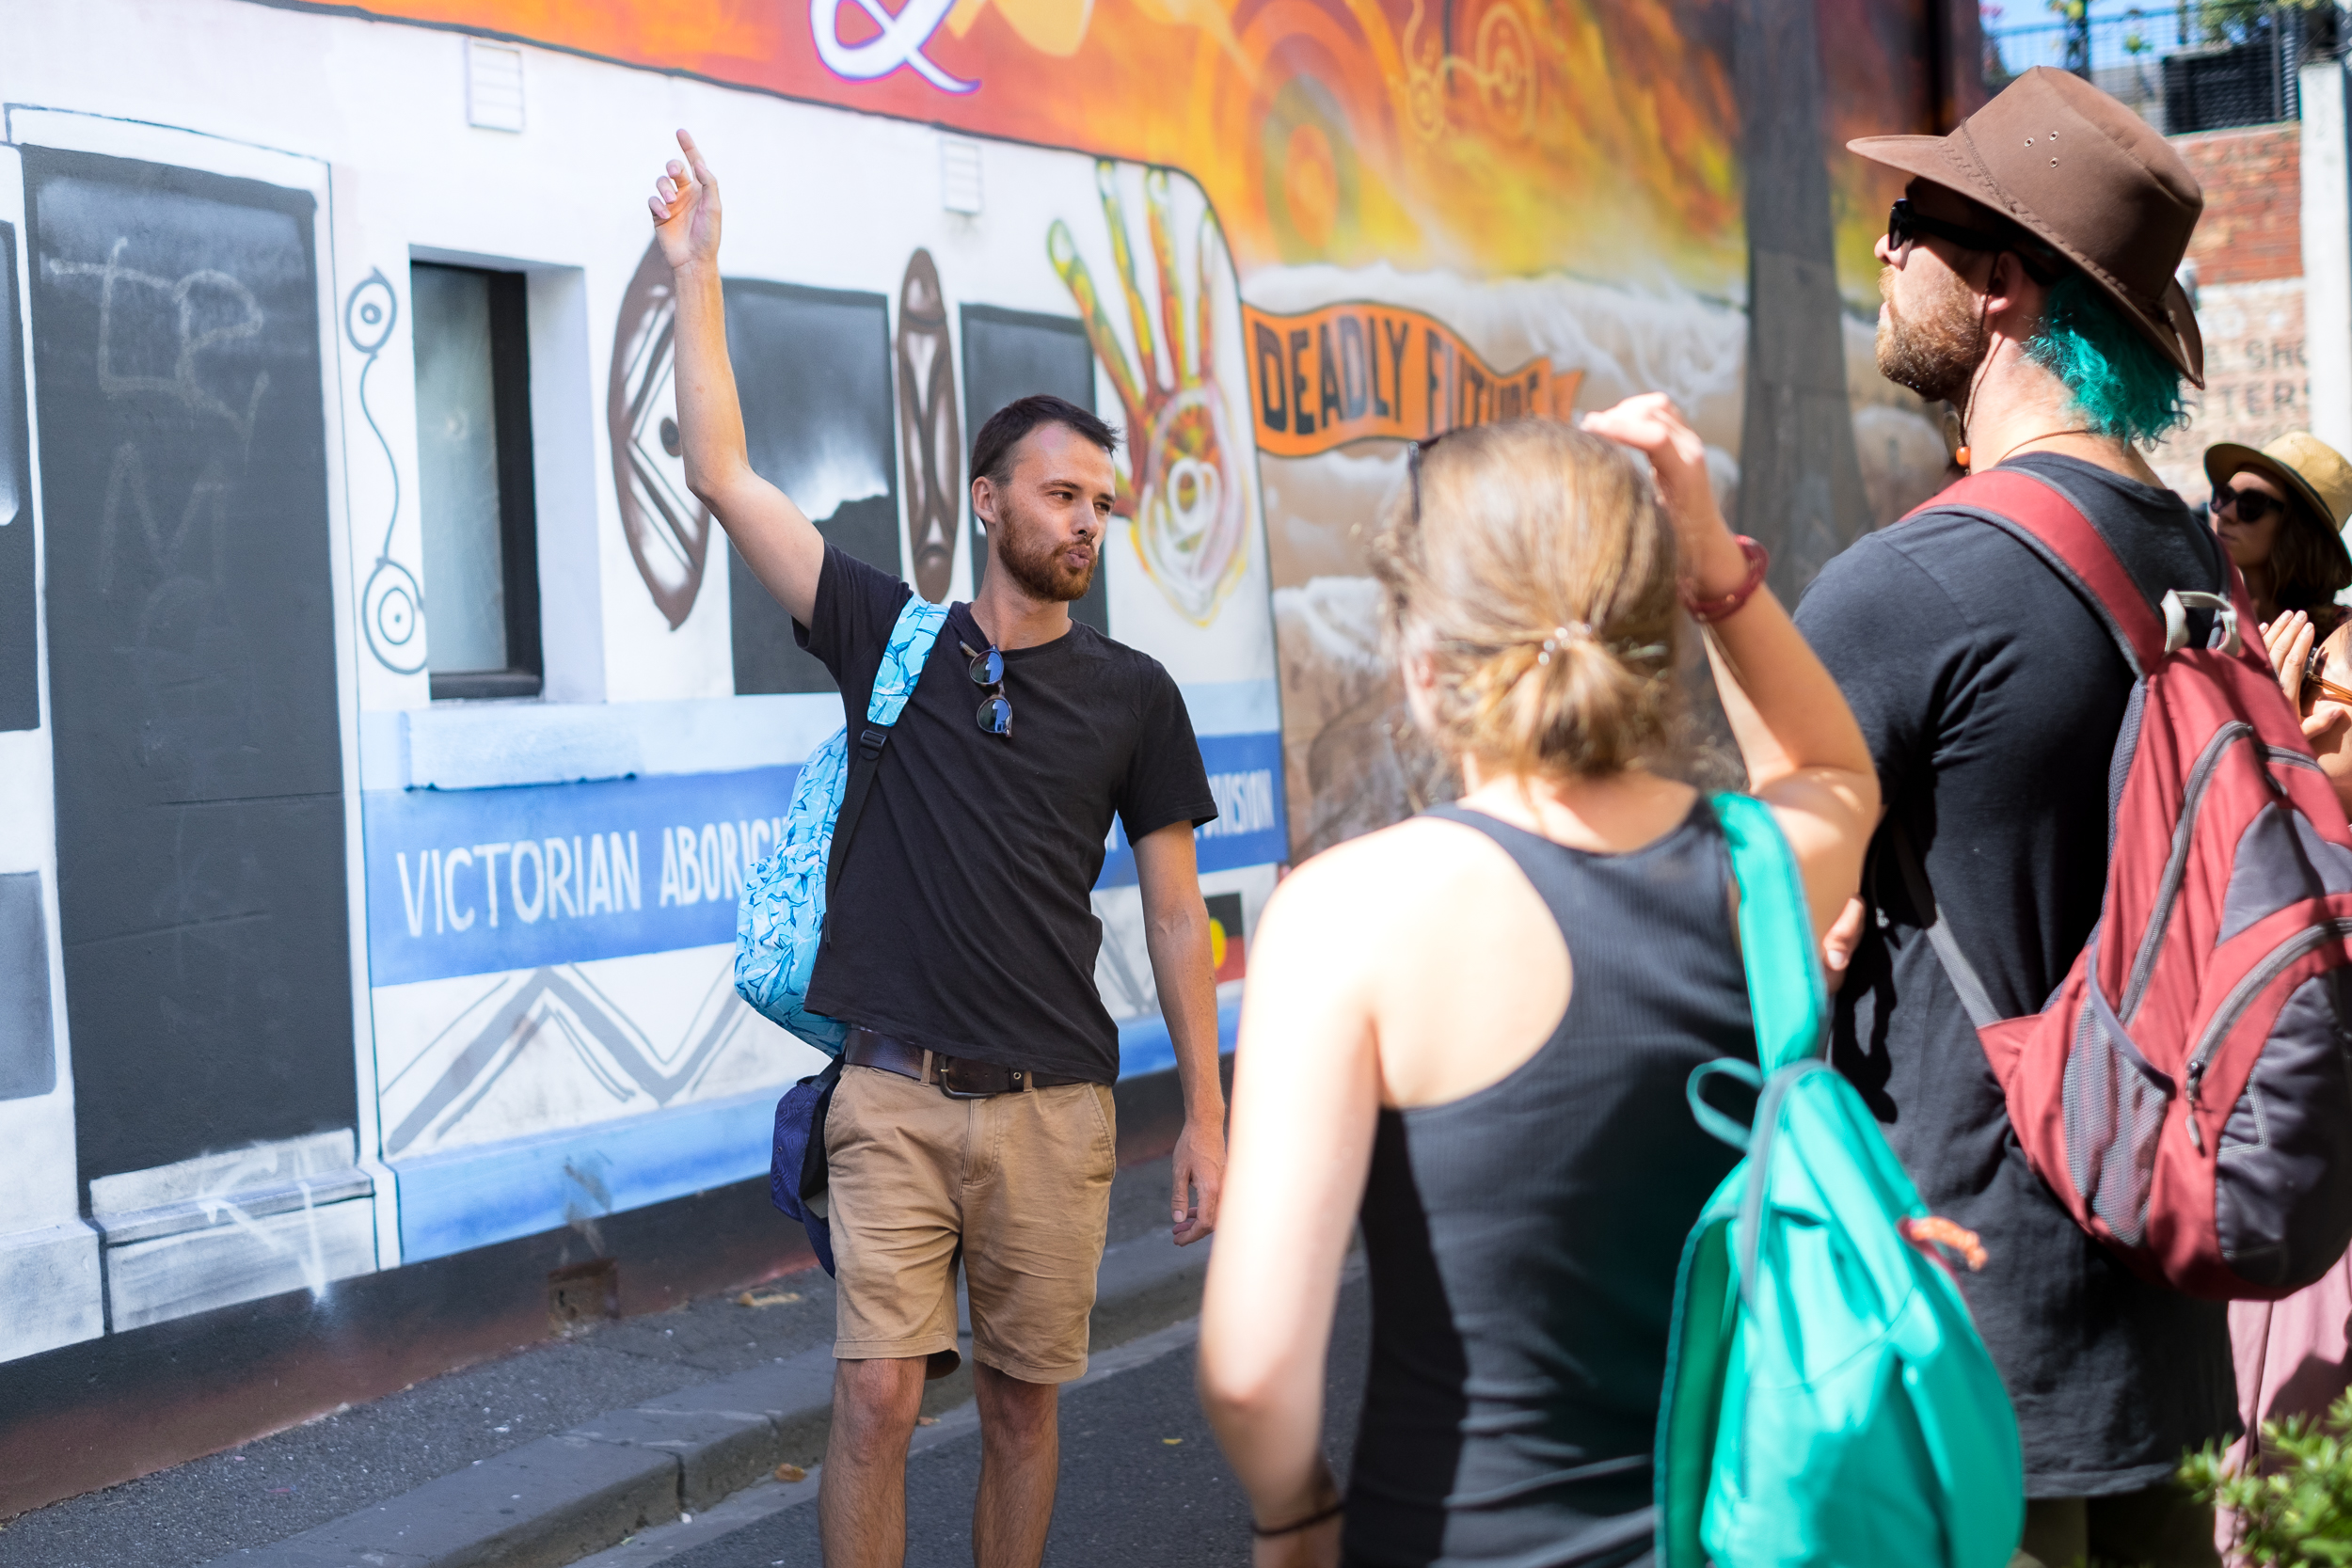 Our local insider guide introducing guests to some of our favourite street art on The Alternative Tour in Fitzroy, Melbourne.